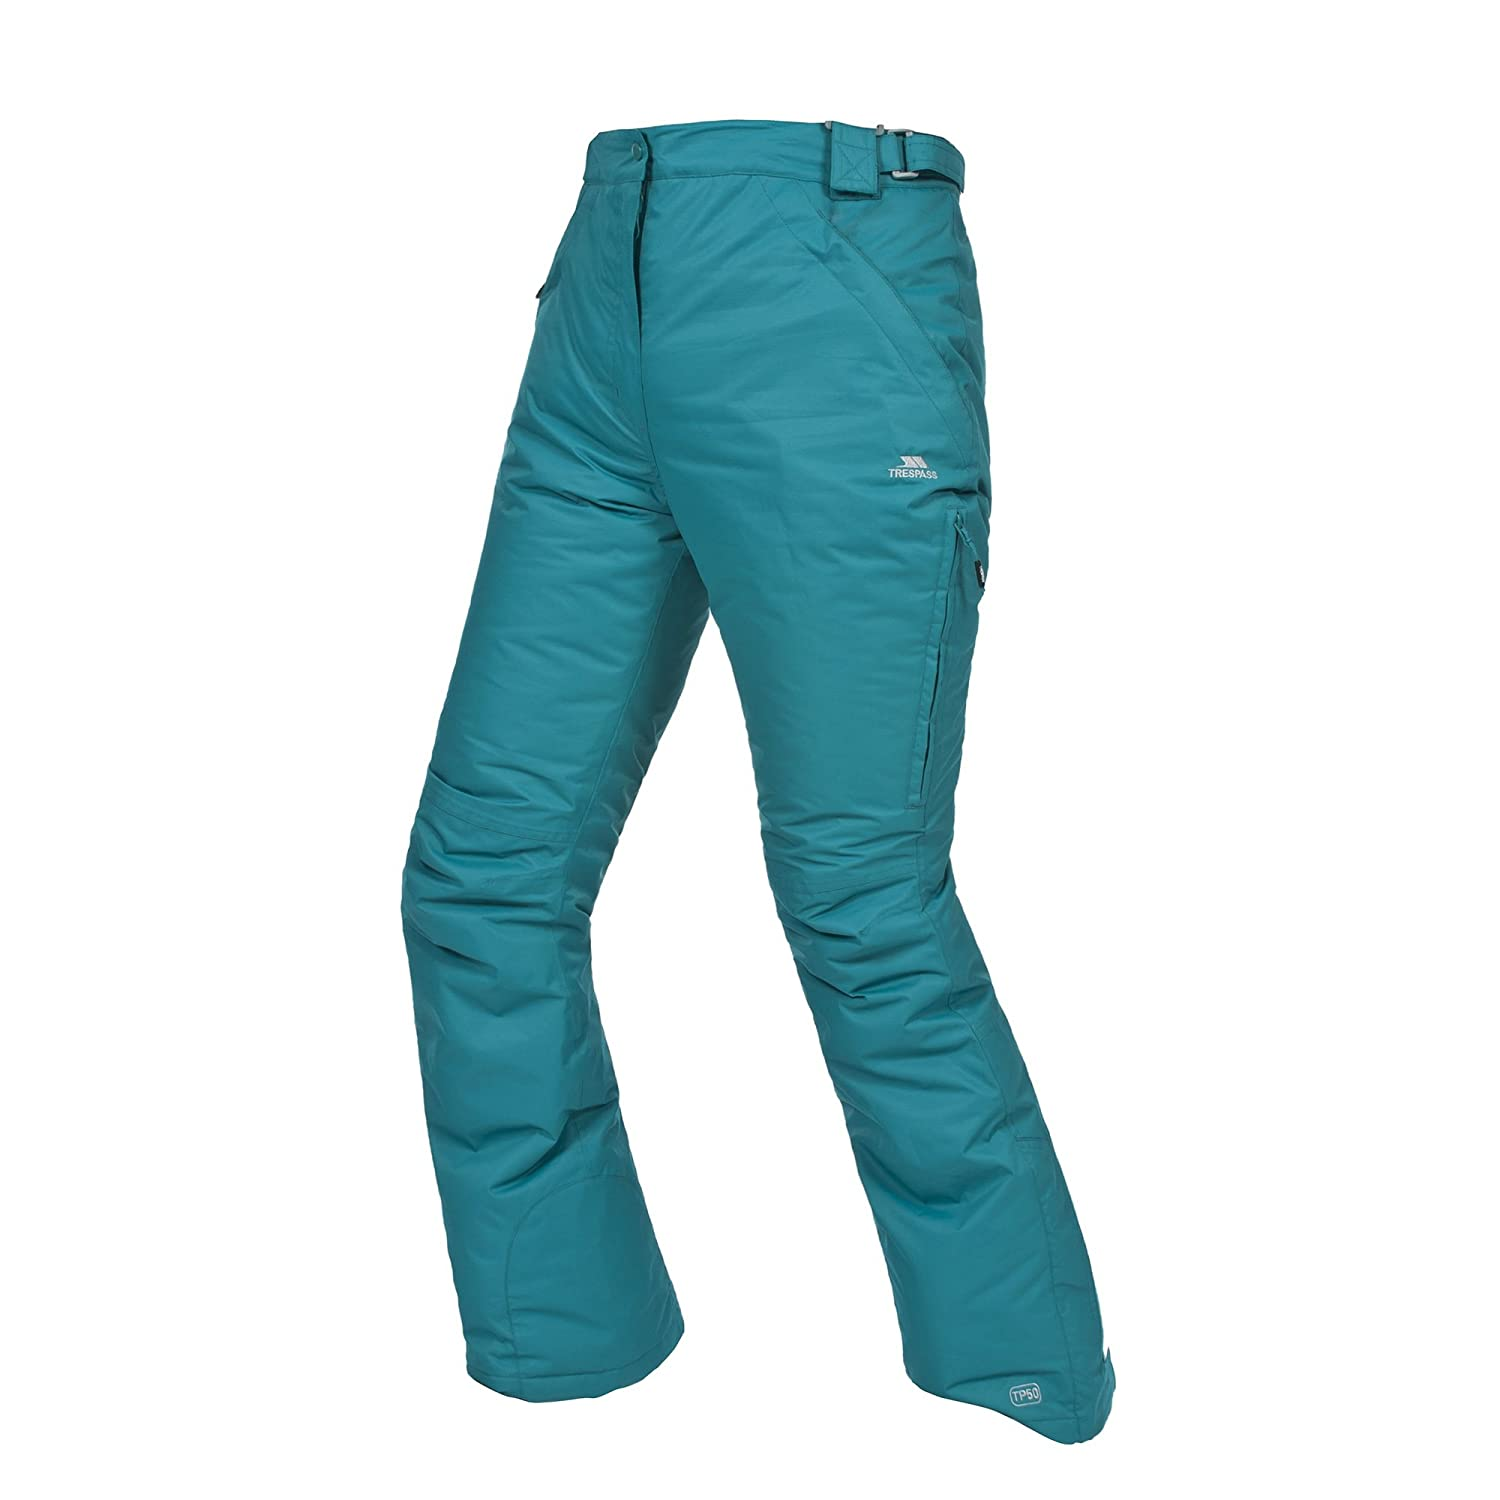 110d2eb63b Amazon.com  Trespass Womens Ladies Lohan Waterproof Ski Pants Trousers   Clothing